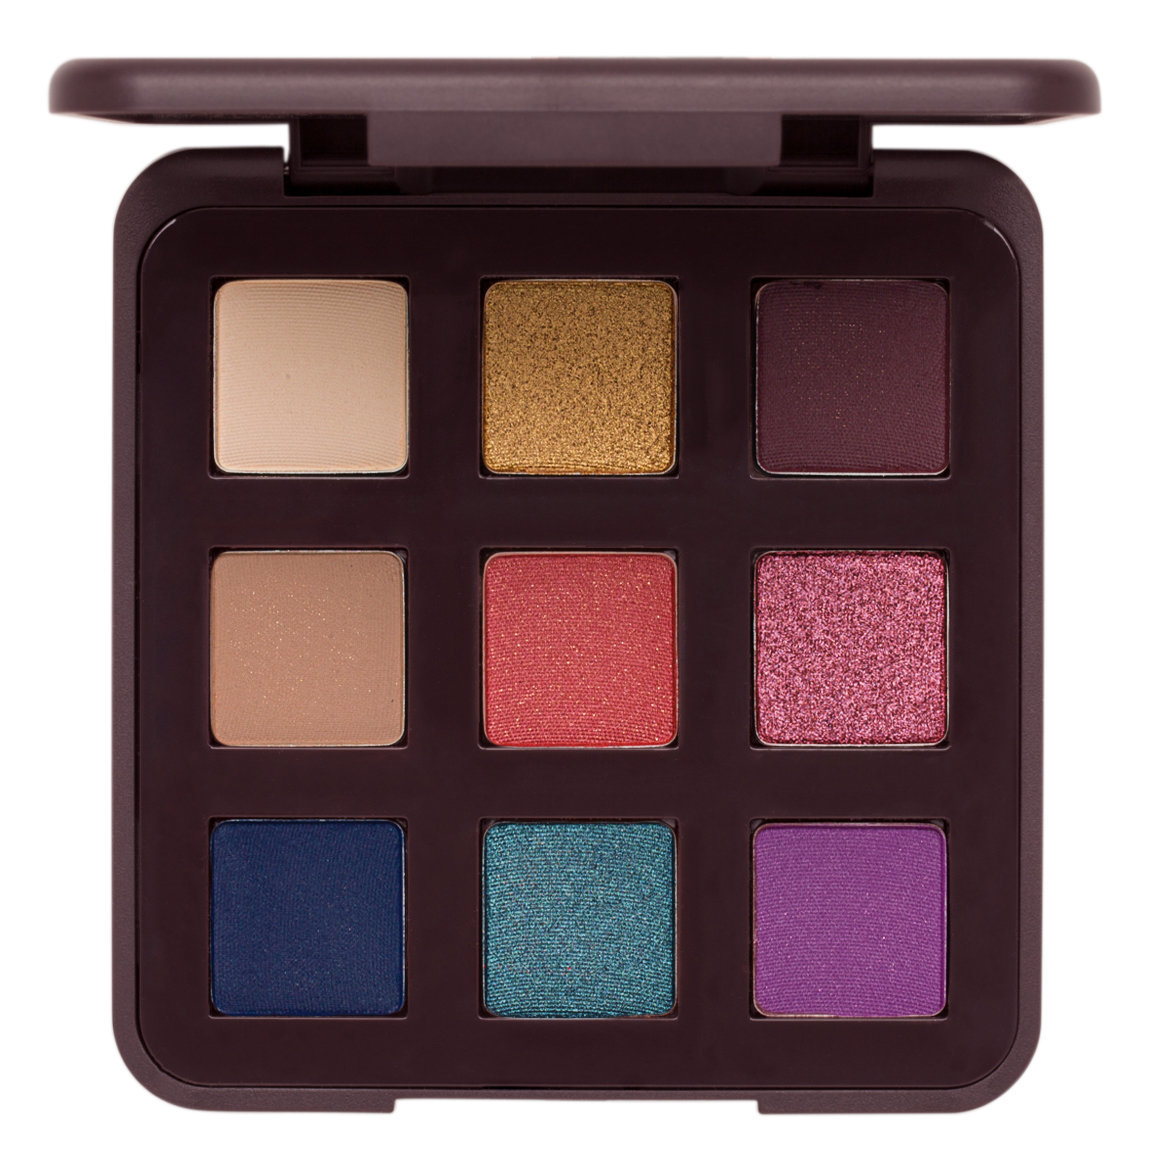 Viseart Libertine Eye Shadow Palette product smear.